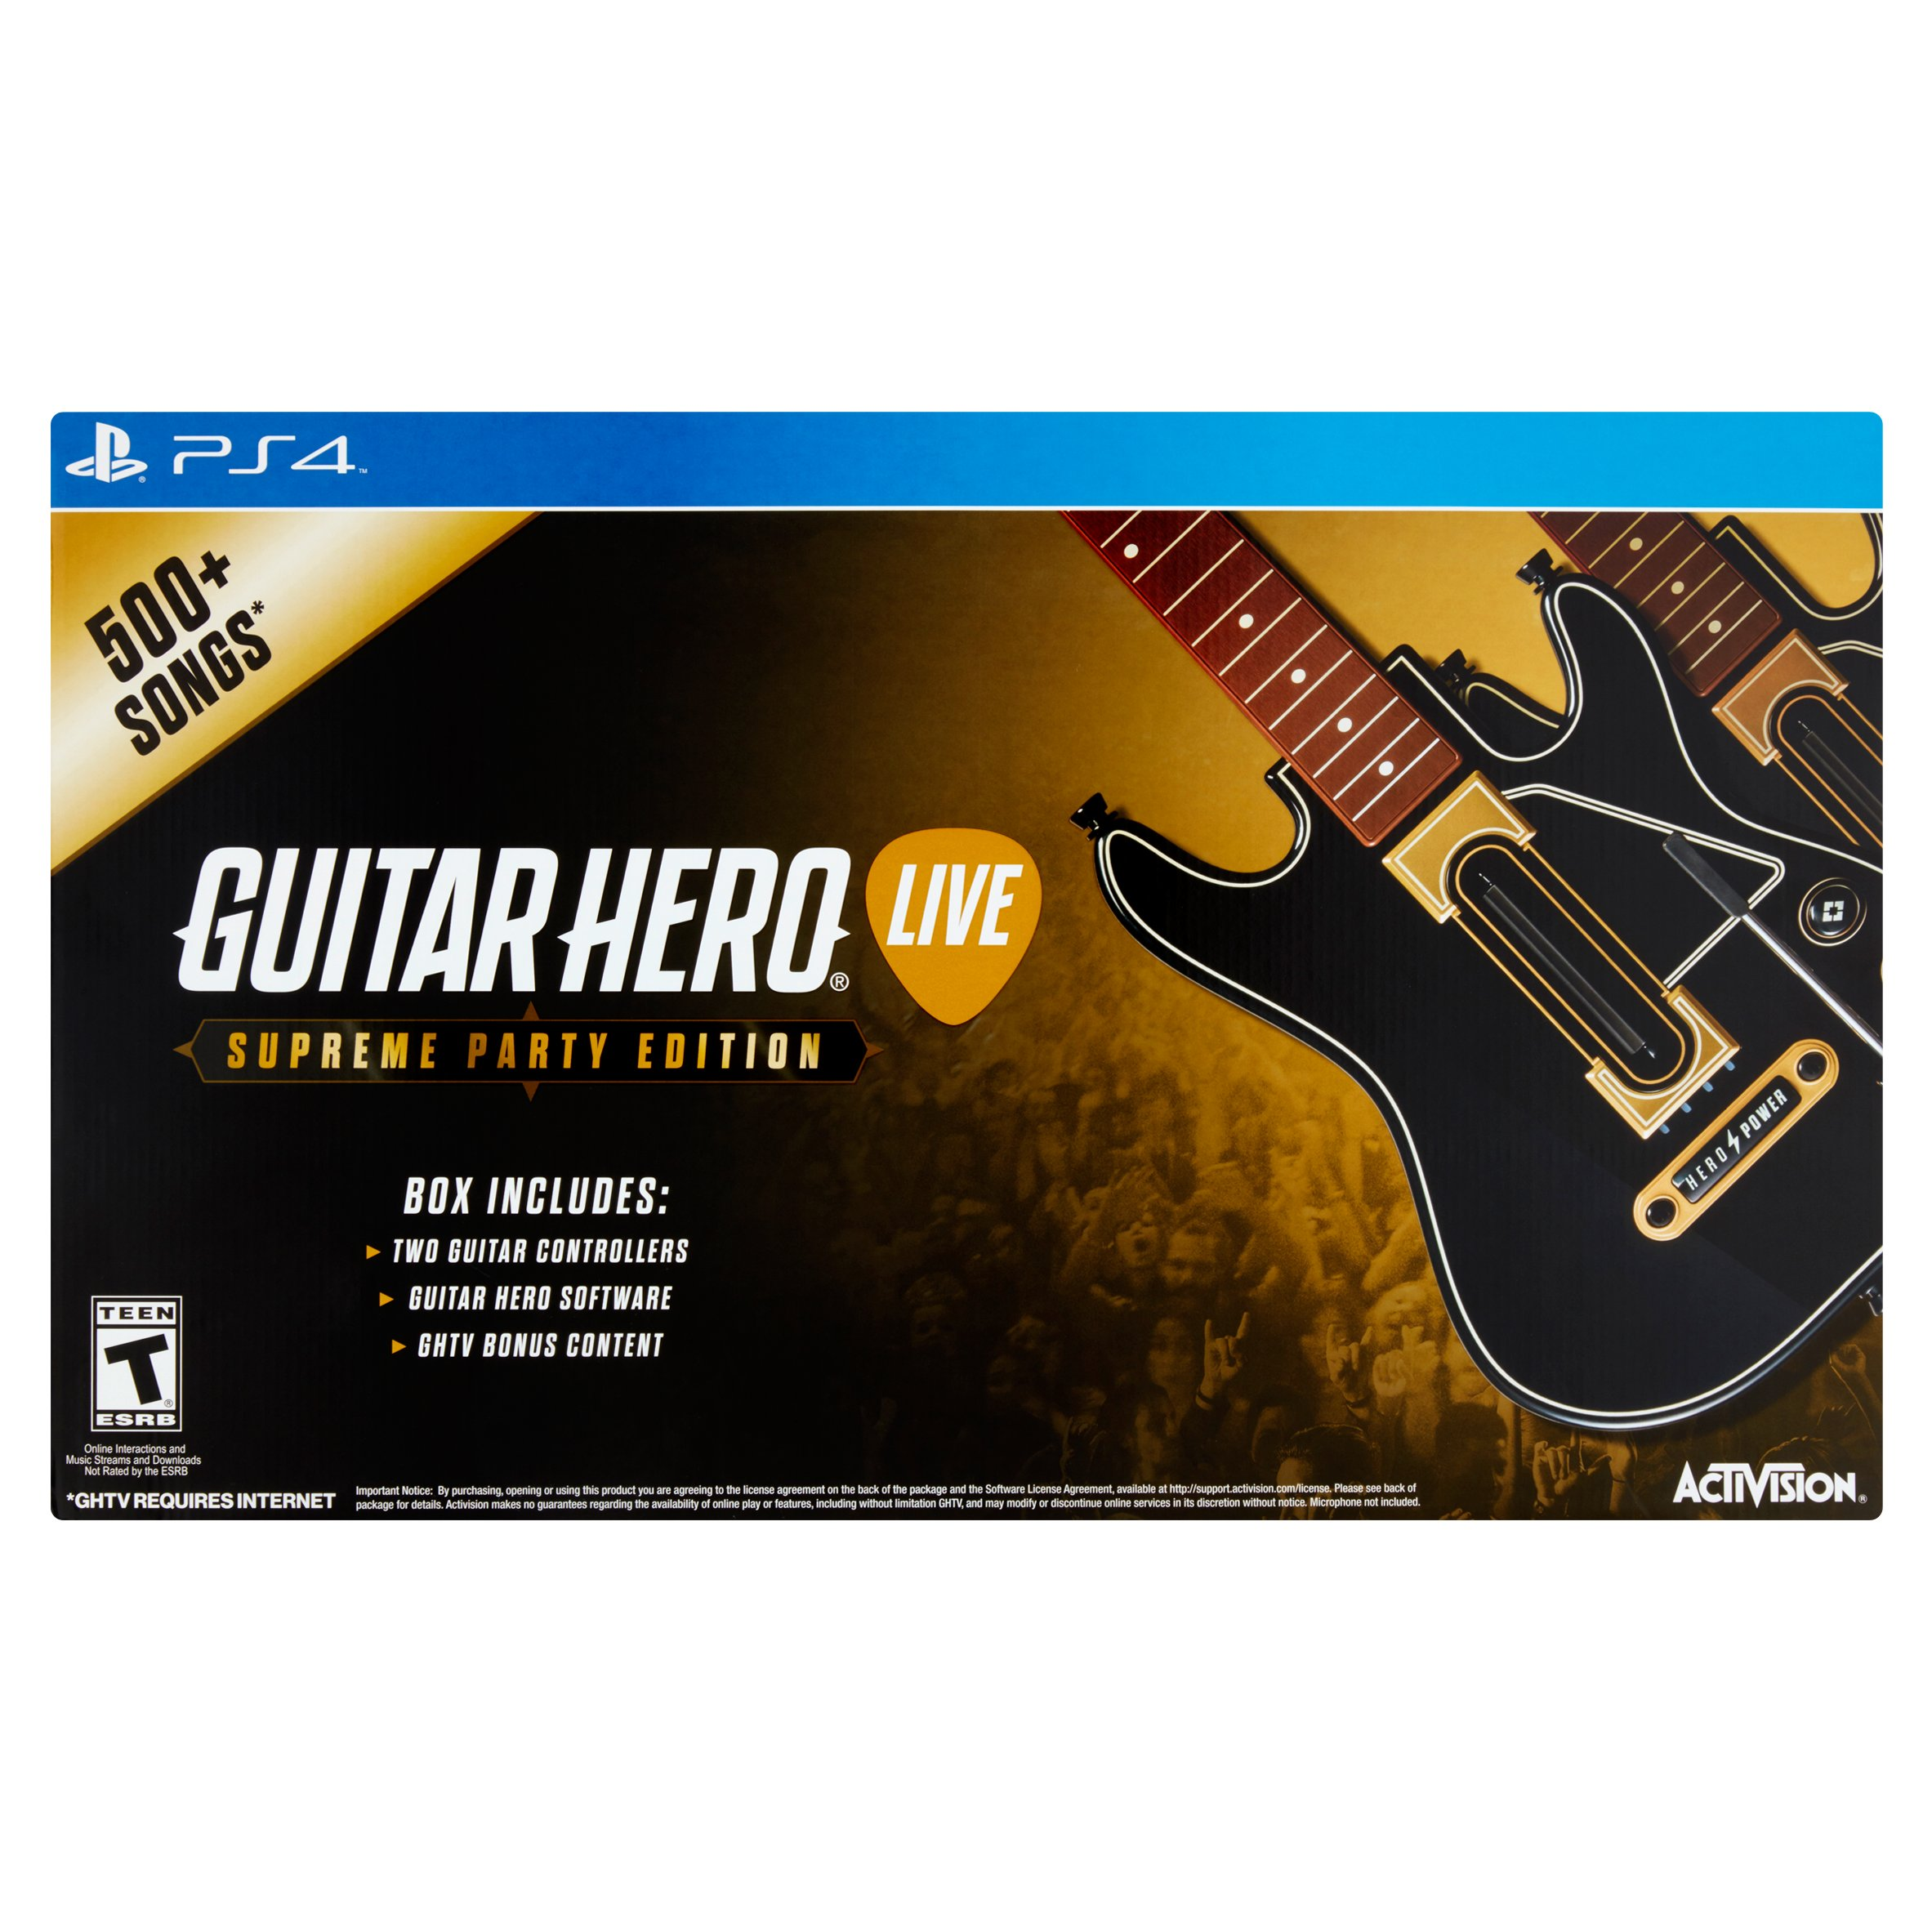 Guitar Hero Live Supreme Party Edition Video Game (PS4)